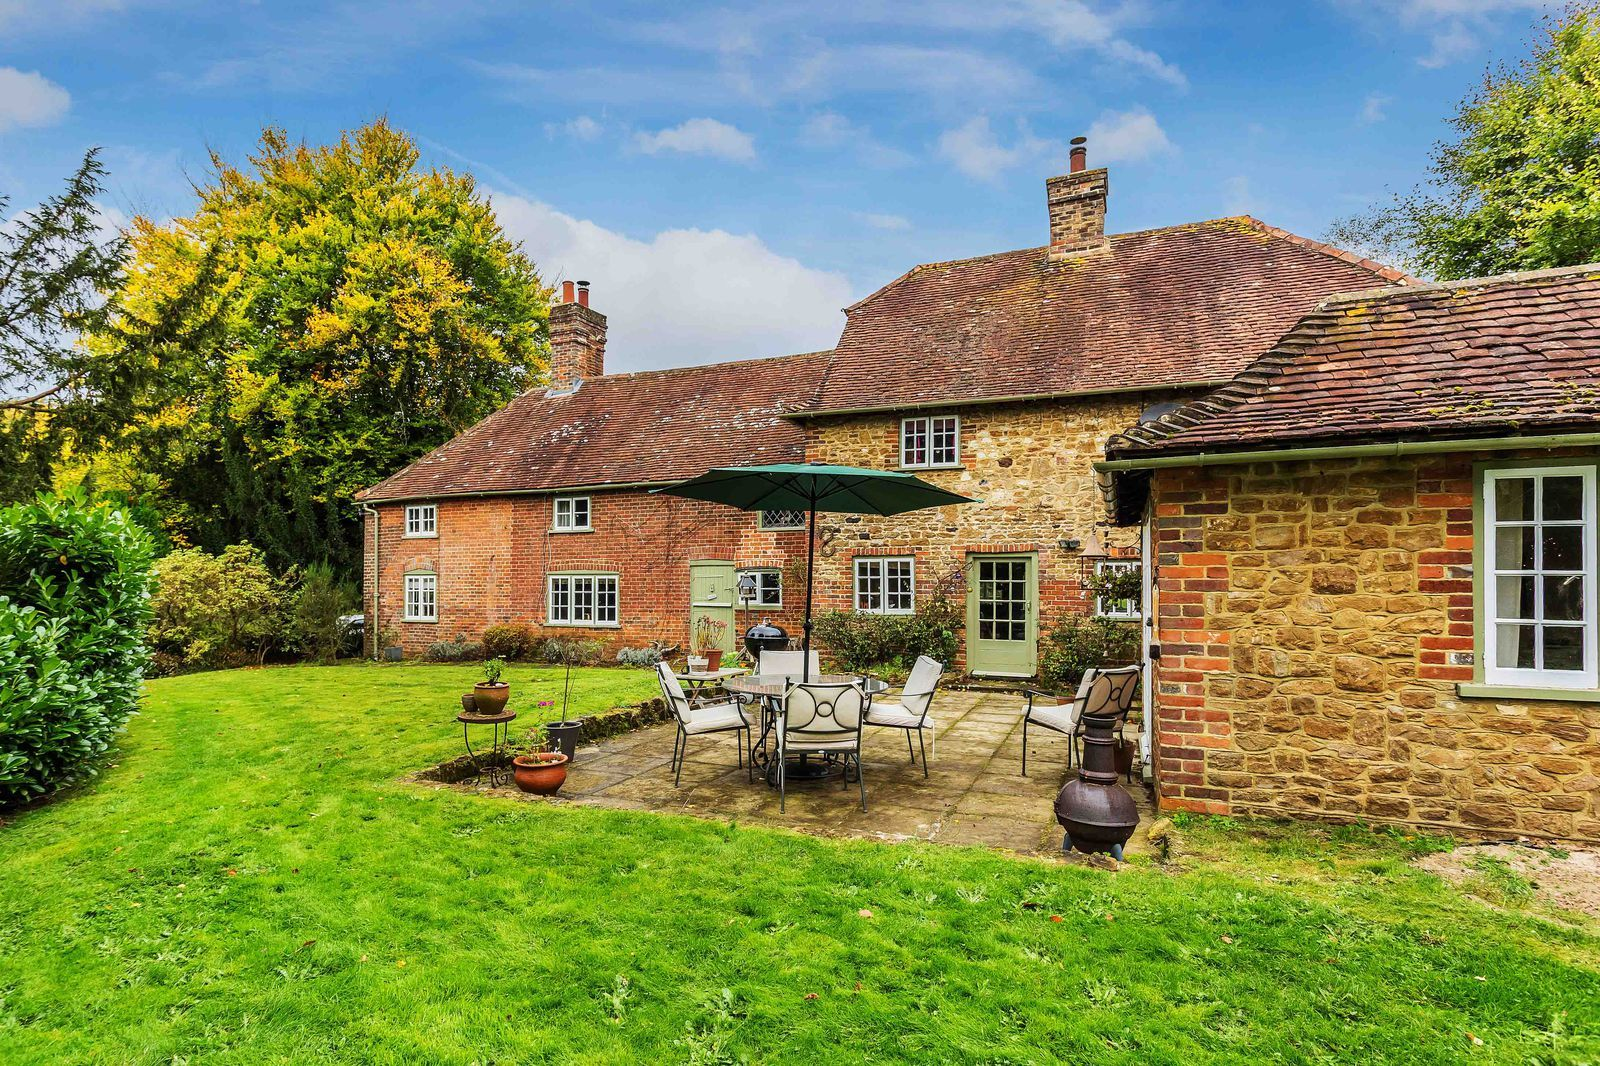 Beautiful 17th Century Surrey Cottage For Sale Is The Epitome Of English Country Charm With Images Beautiful Homes